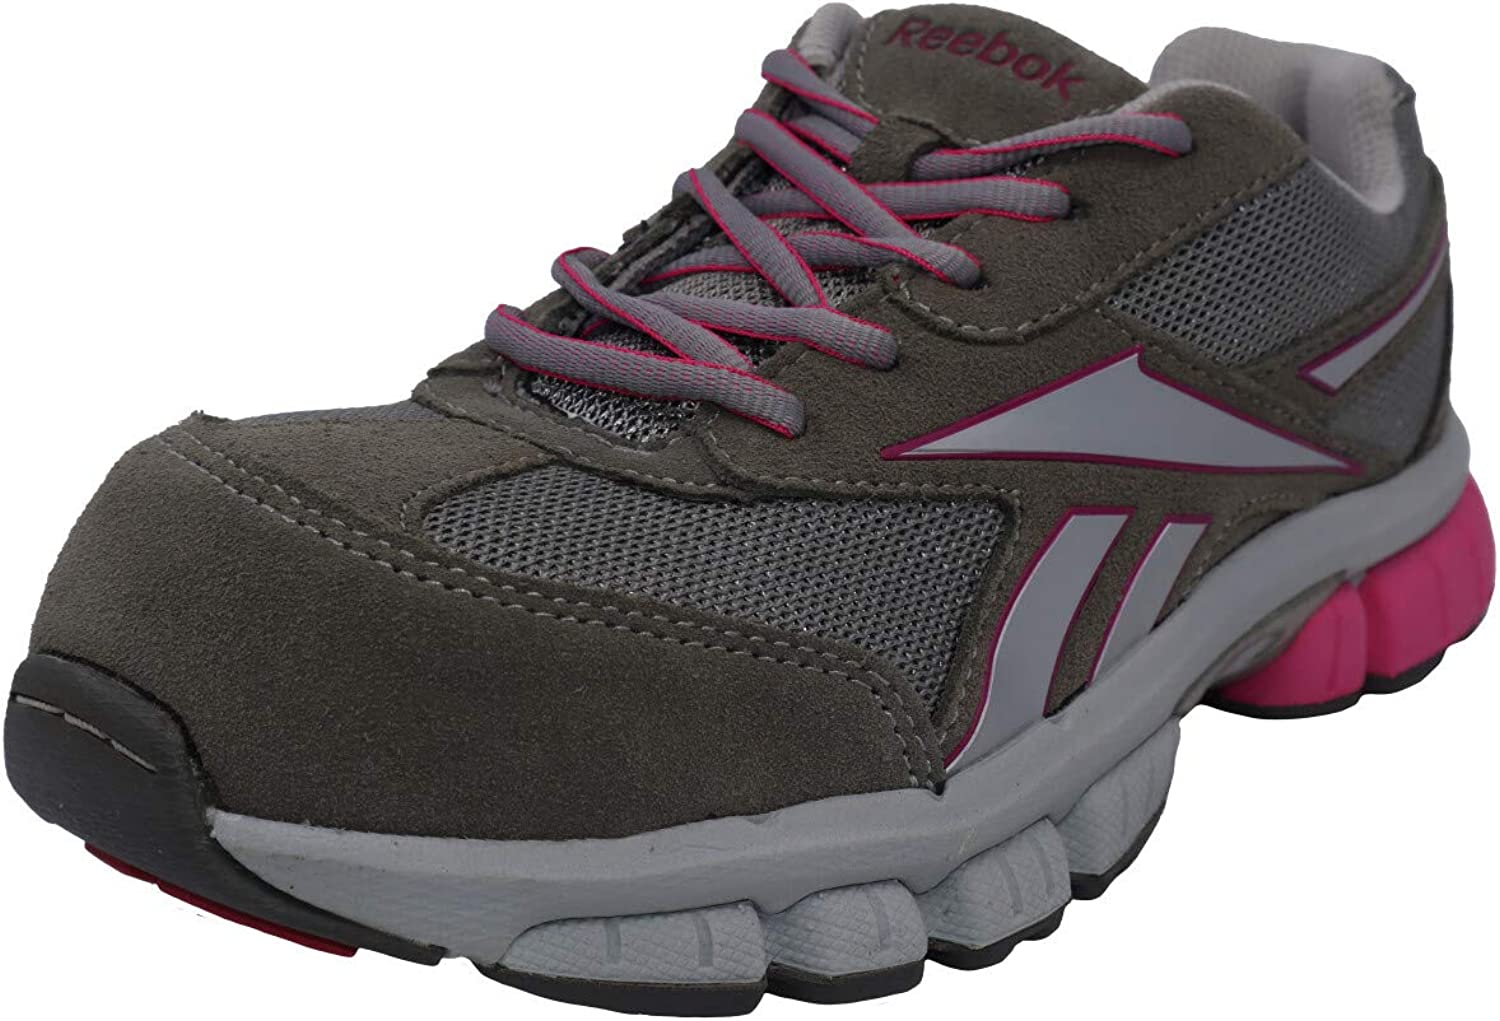 Reebok RB445 Women's Performance Cross Trainer CT Shoe Pink Grey